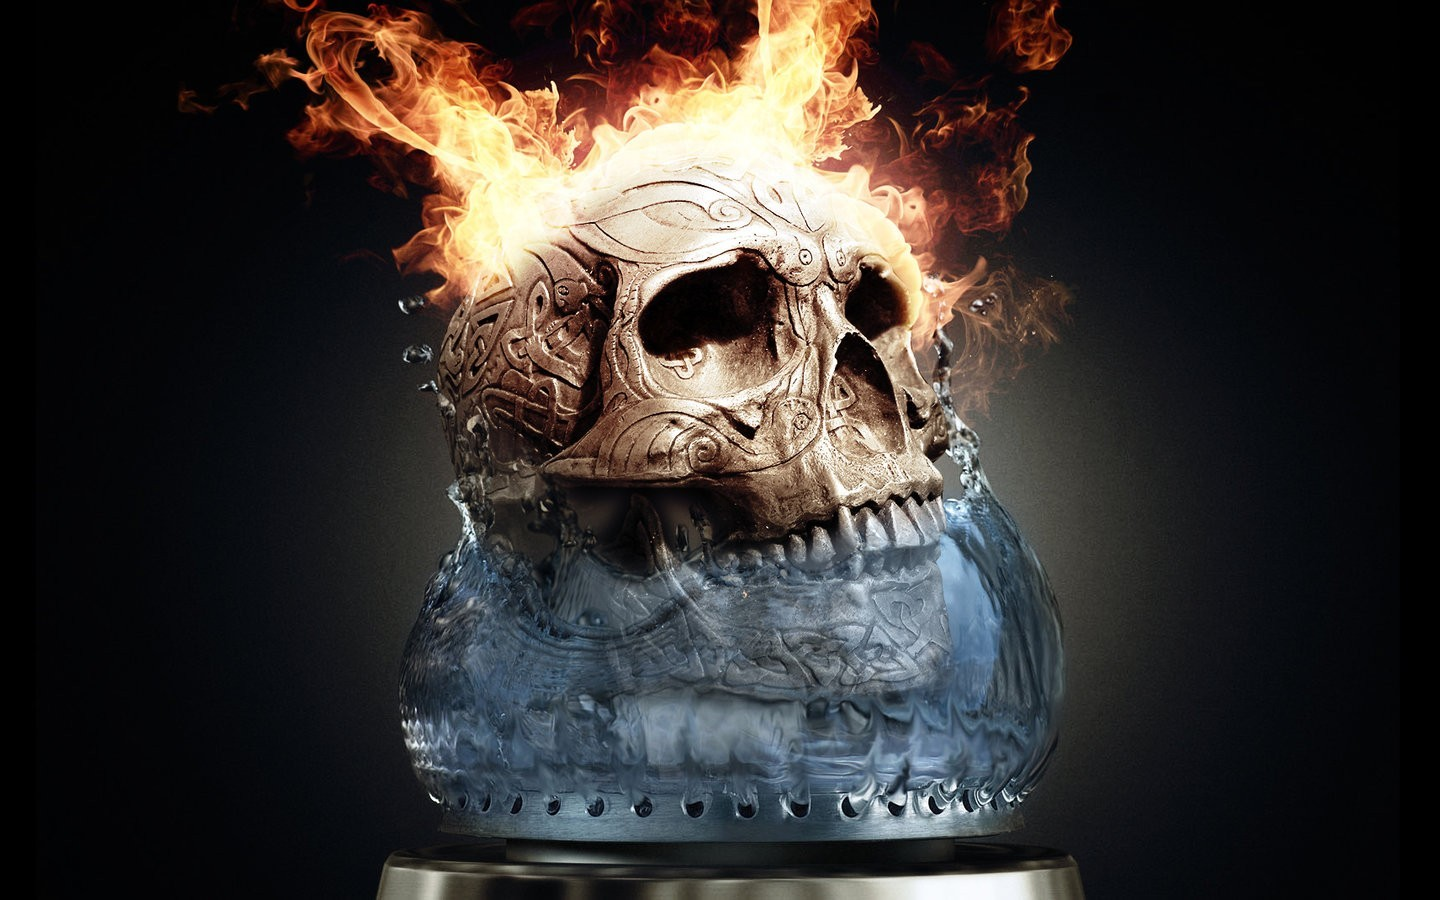 22576 download wallpaper Art, Fire, Death, Objects, Skeletons screensavers and pictures for free